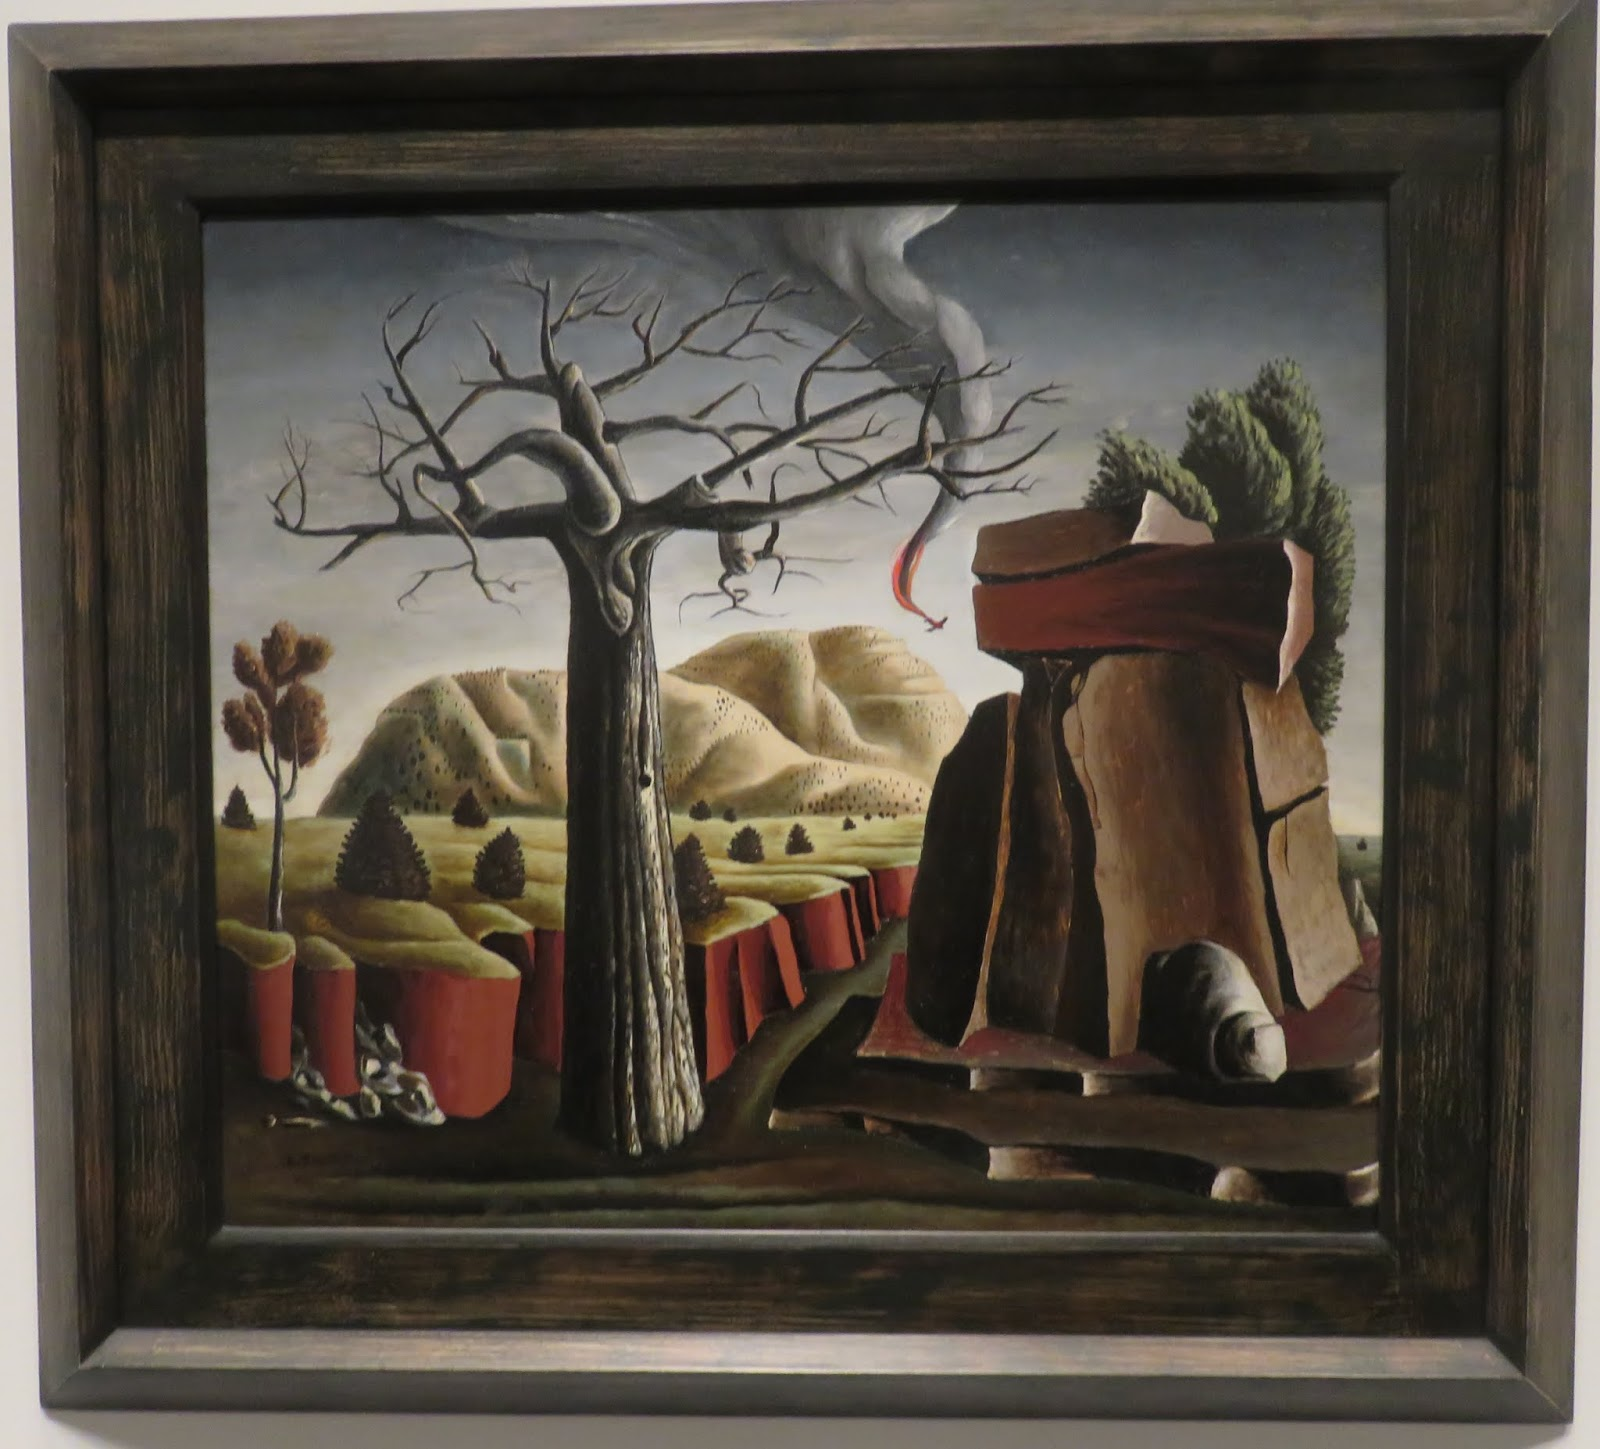 a review of the west texas incident a painting by everett spruce Everett spruce on artstack - art online everett spruce on artstack - art online  west texas incident, 1937 everett spruce (32 followers) mention ppl with @[name.